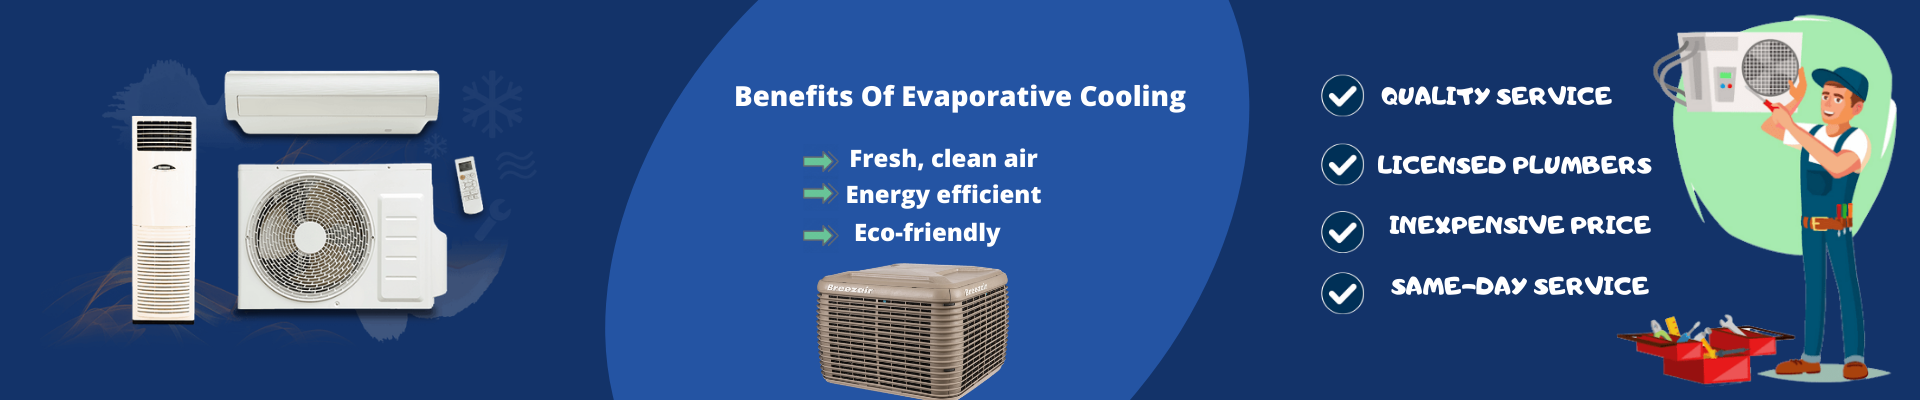 Evaporative Cooling Service